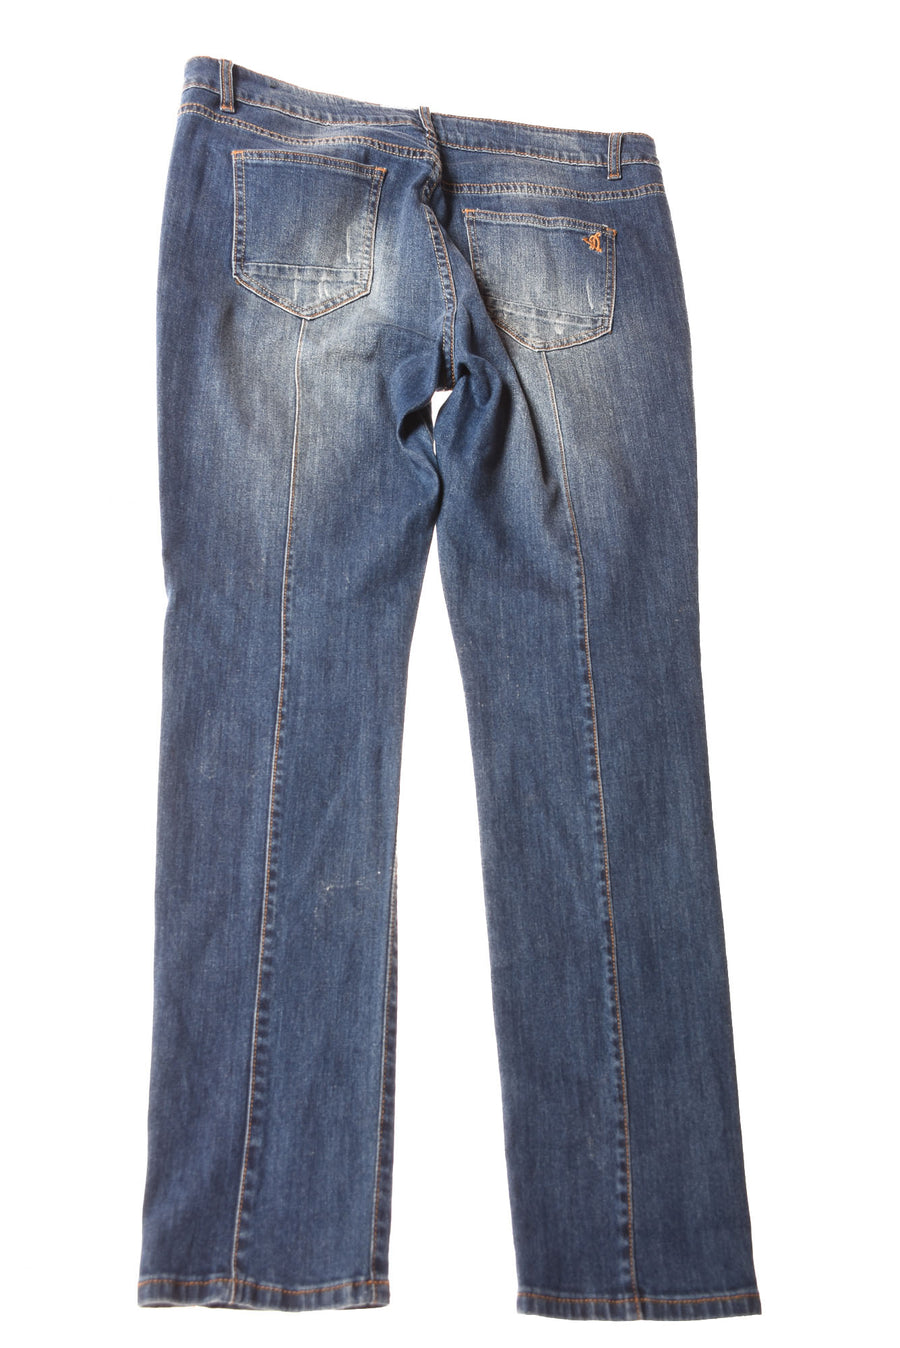 USED VIP Jeans Women's Jeans 15/16 Blue